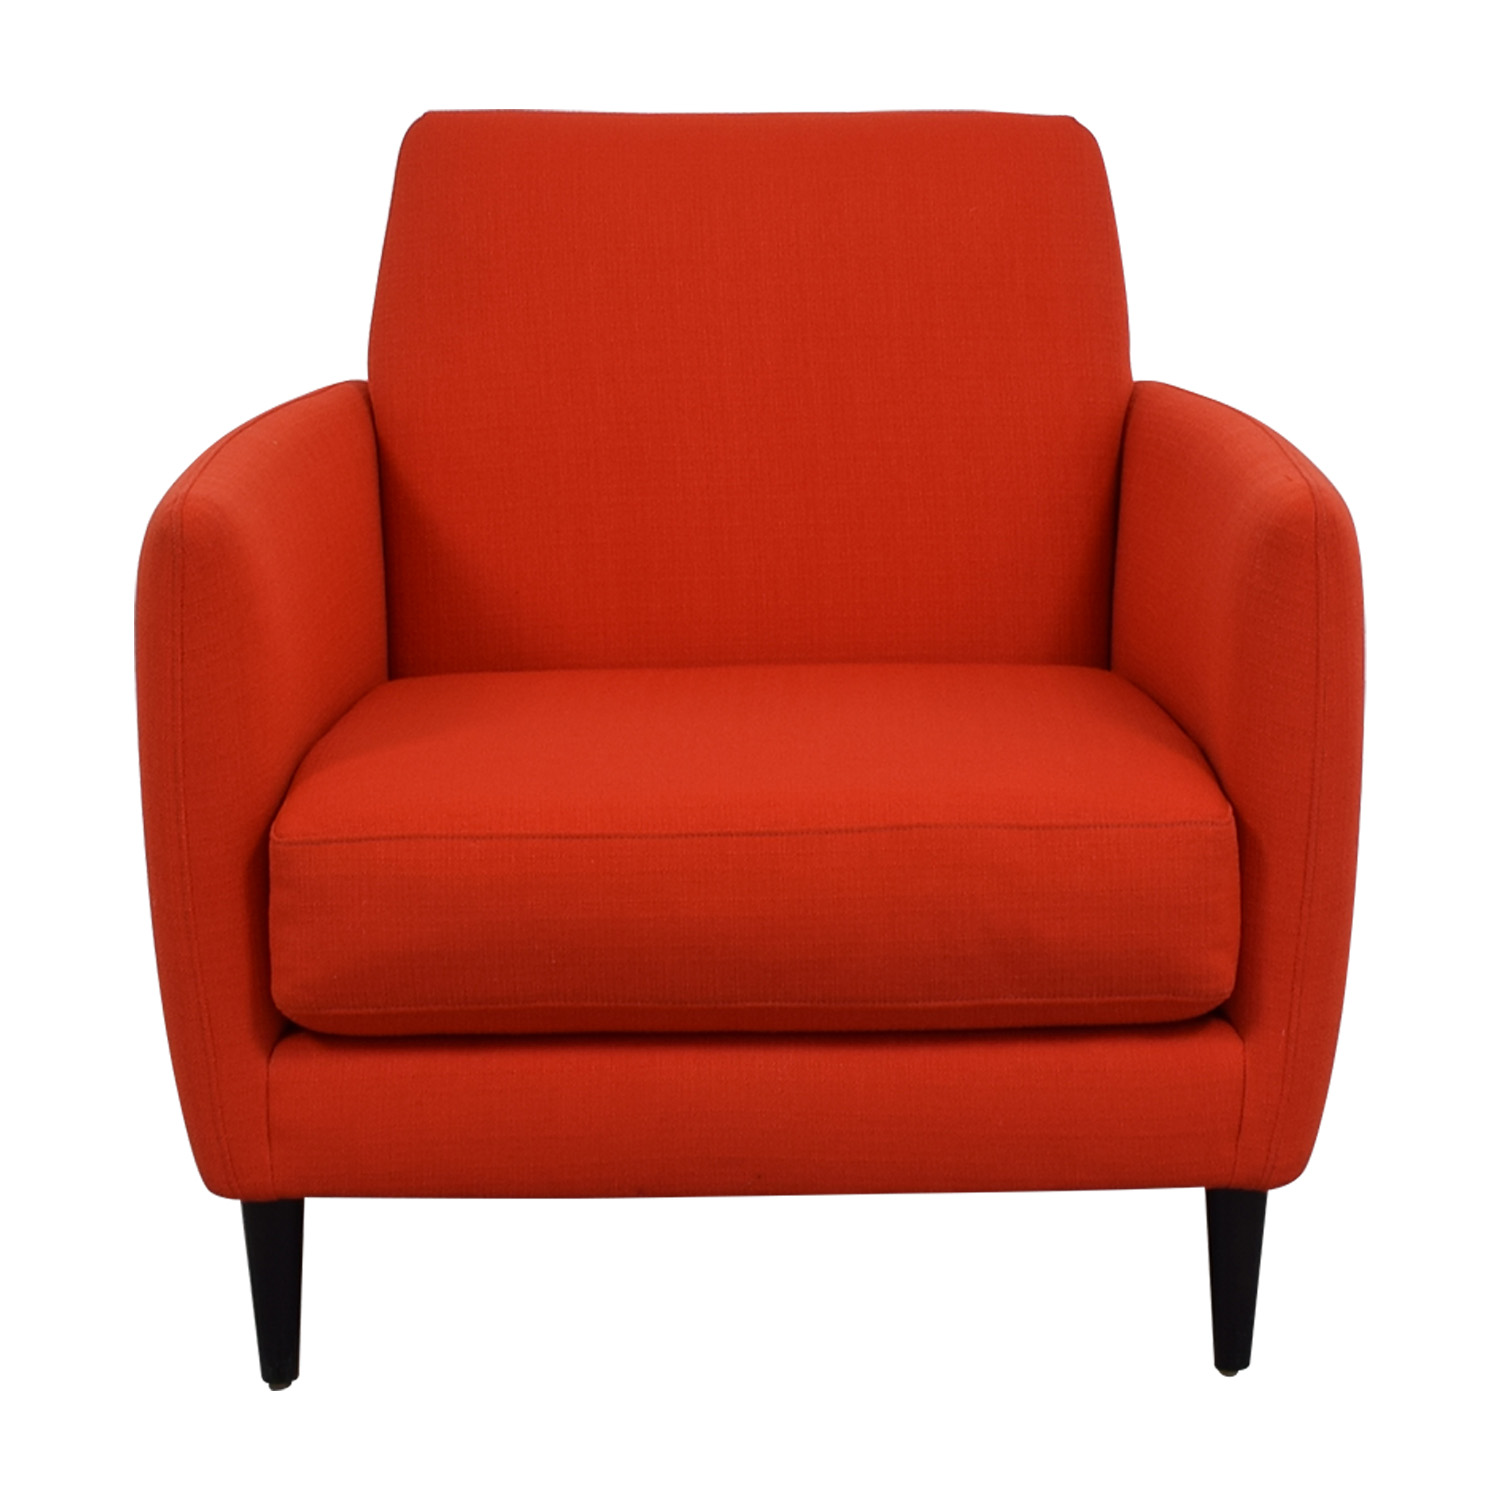 shop CB2 Orange Red Parlour Chair CB2 Accent Chairs